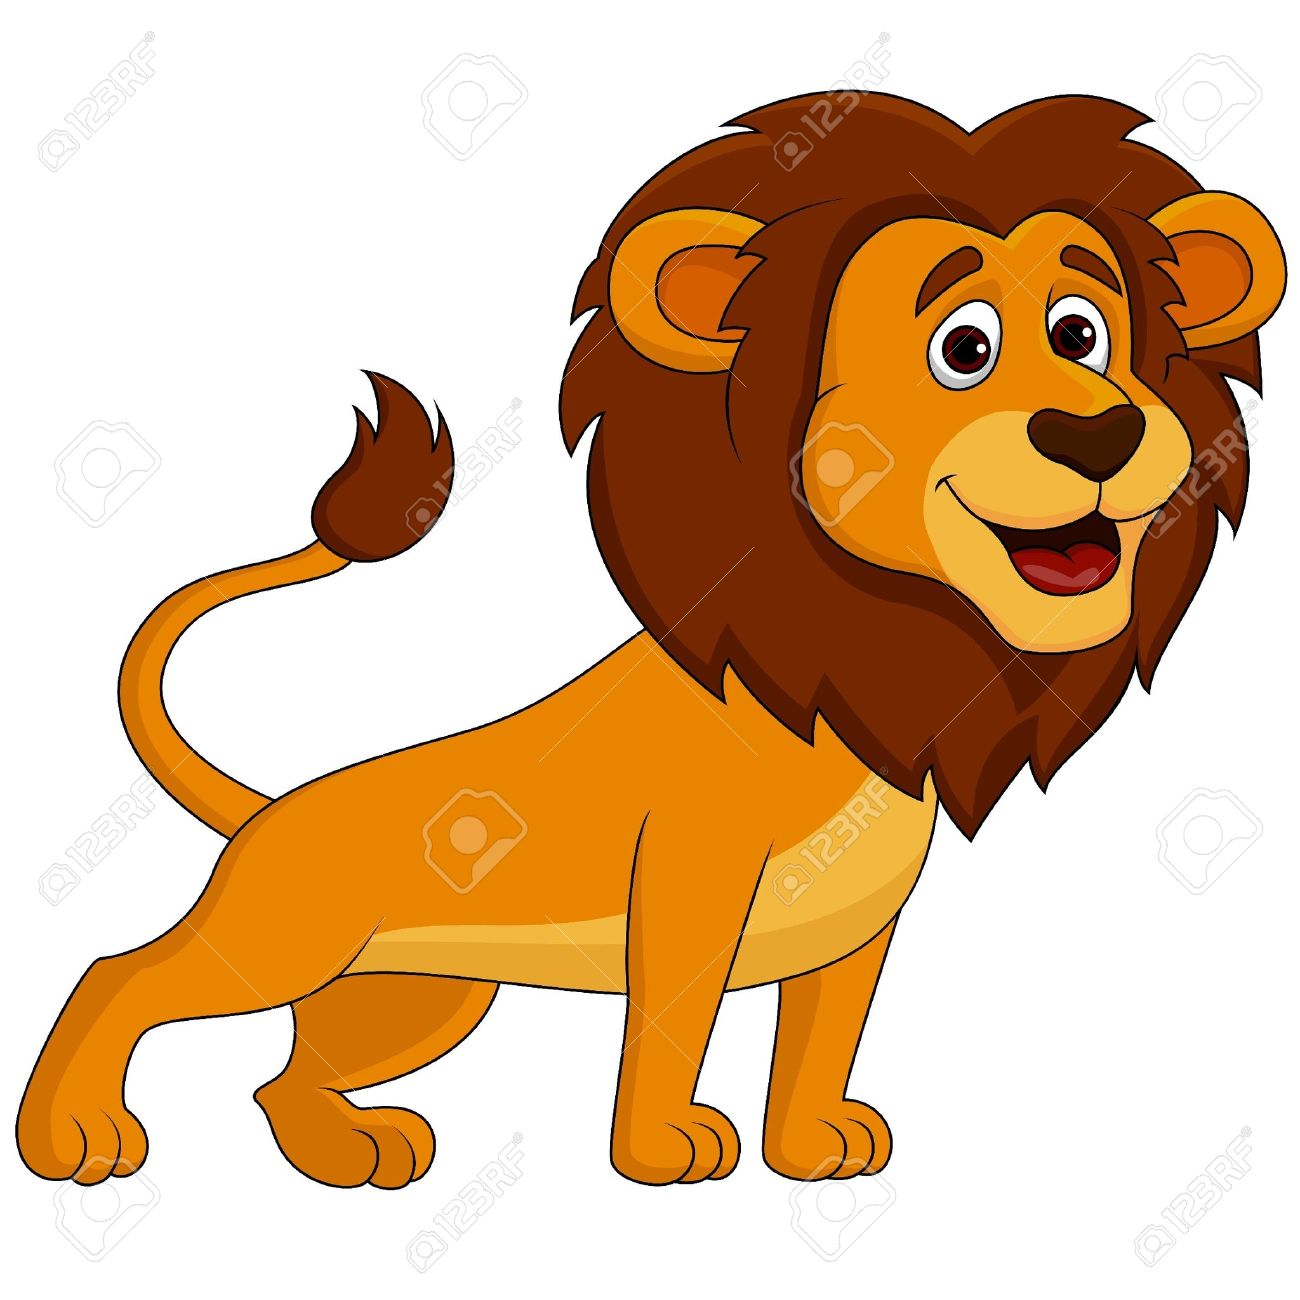 Lion Clipart Roaring   Free download on ClipArtMag